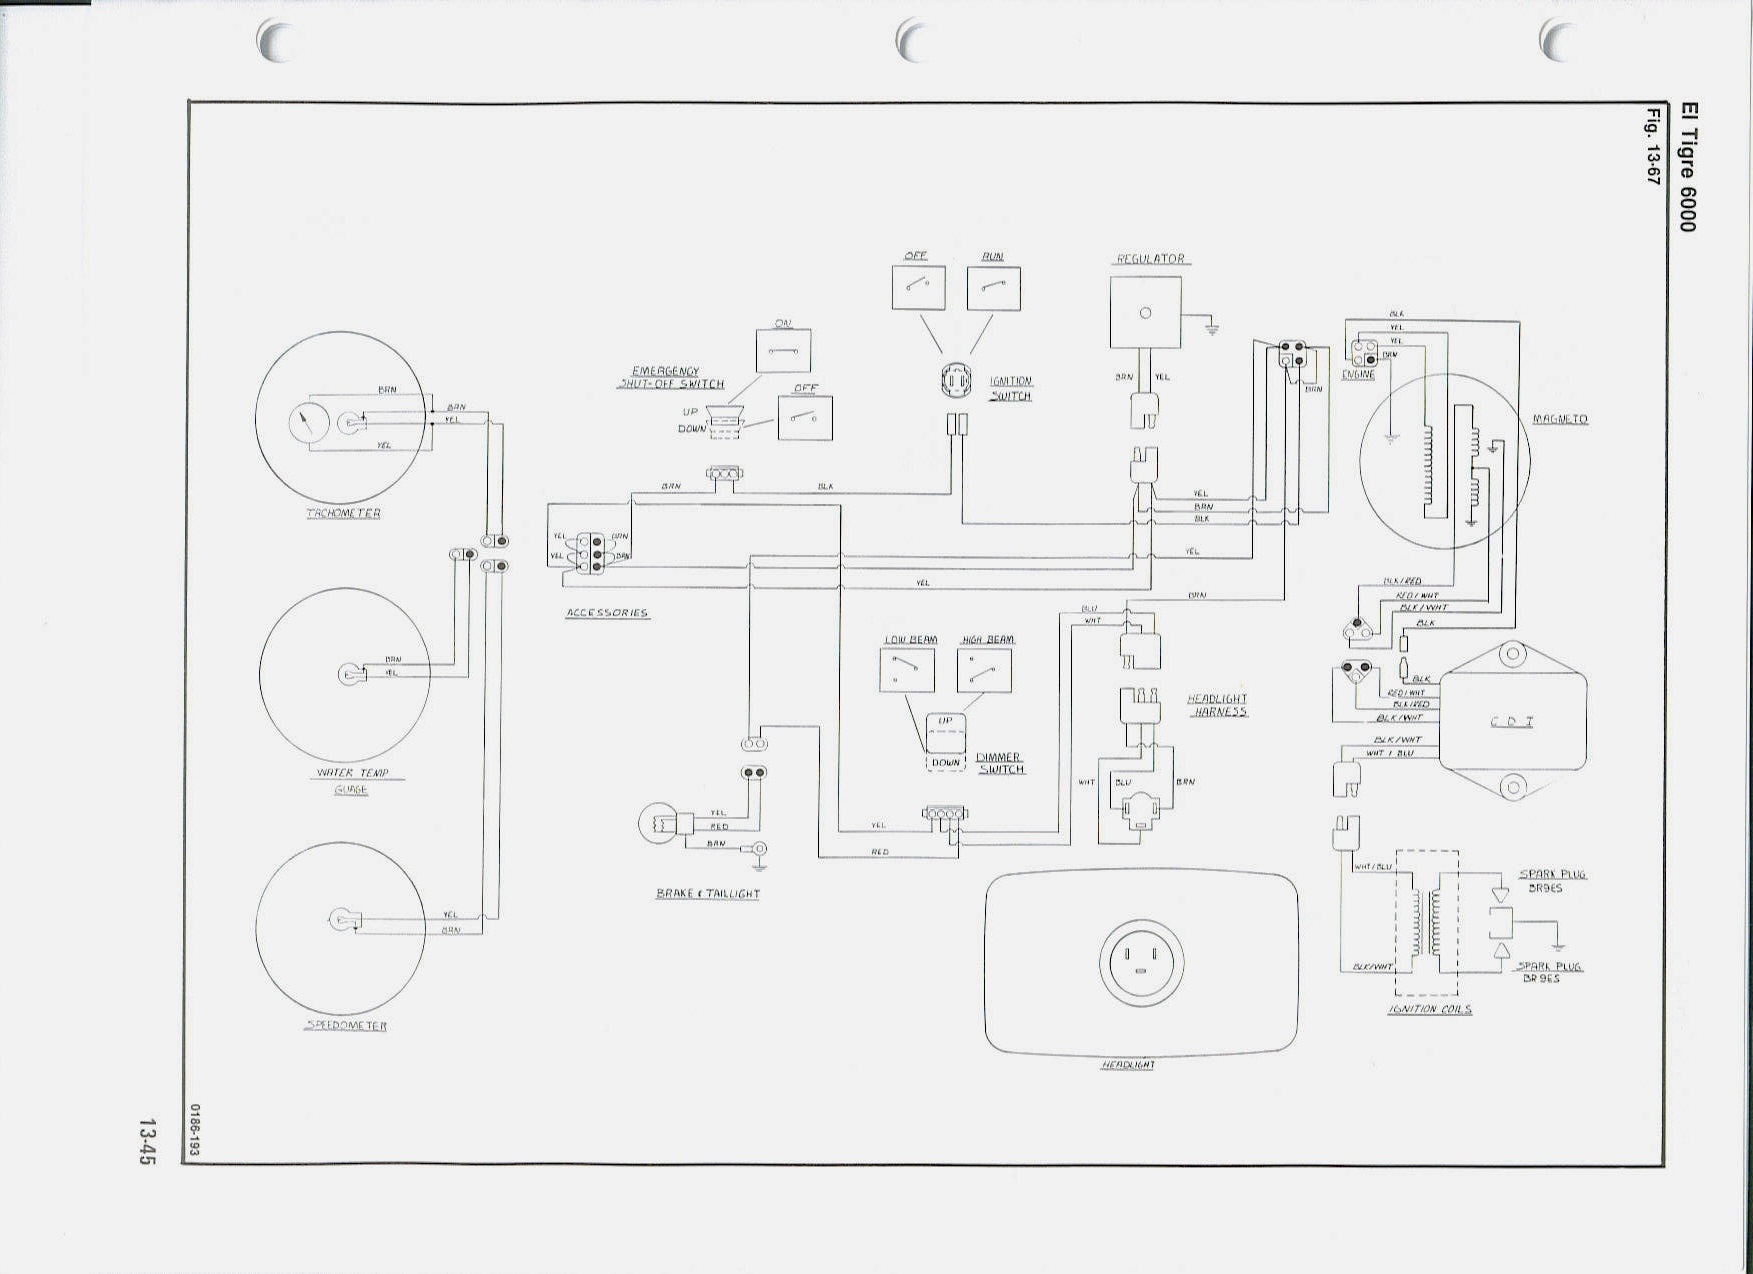 a wiring diagram for 1994 arctic cat prowler zr 580 wiring diagram Electric Motor Wiring Diagram small resolution of arctic cat 580 wiring diagram wiring library husqvarna wiring diagram arctic cat prowler